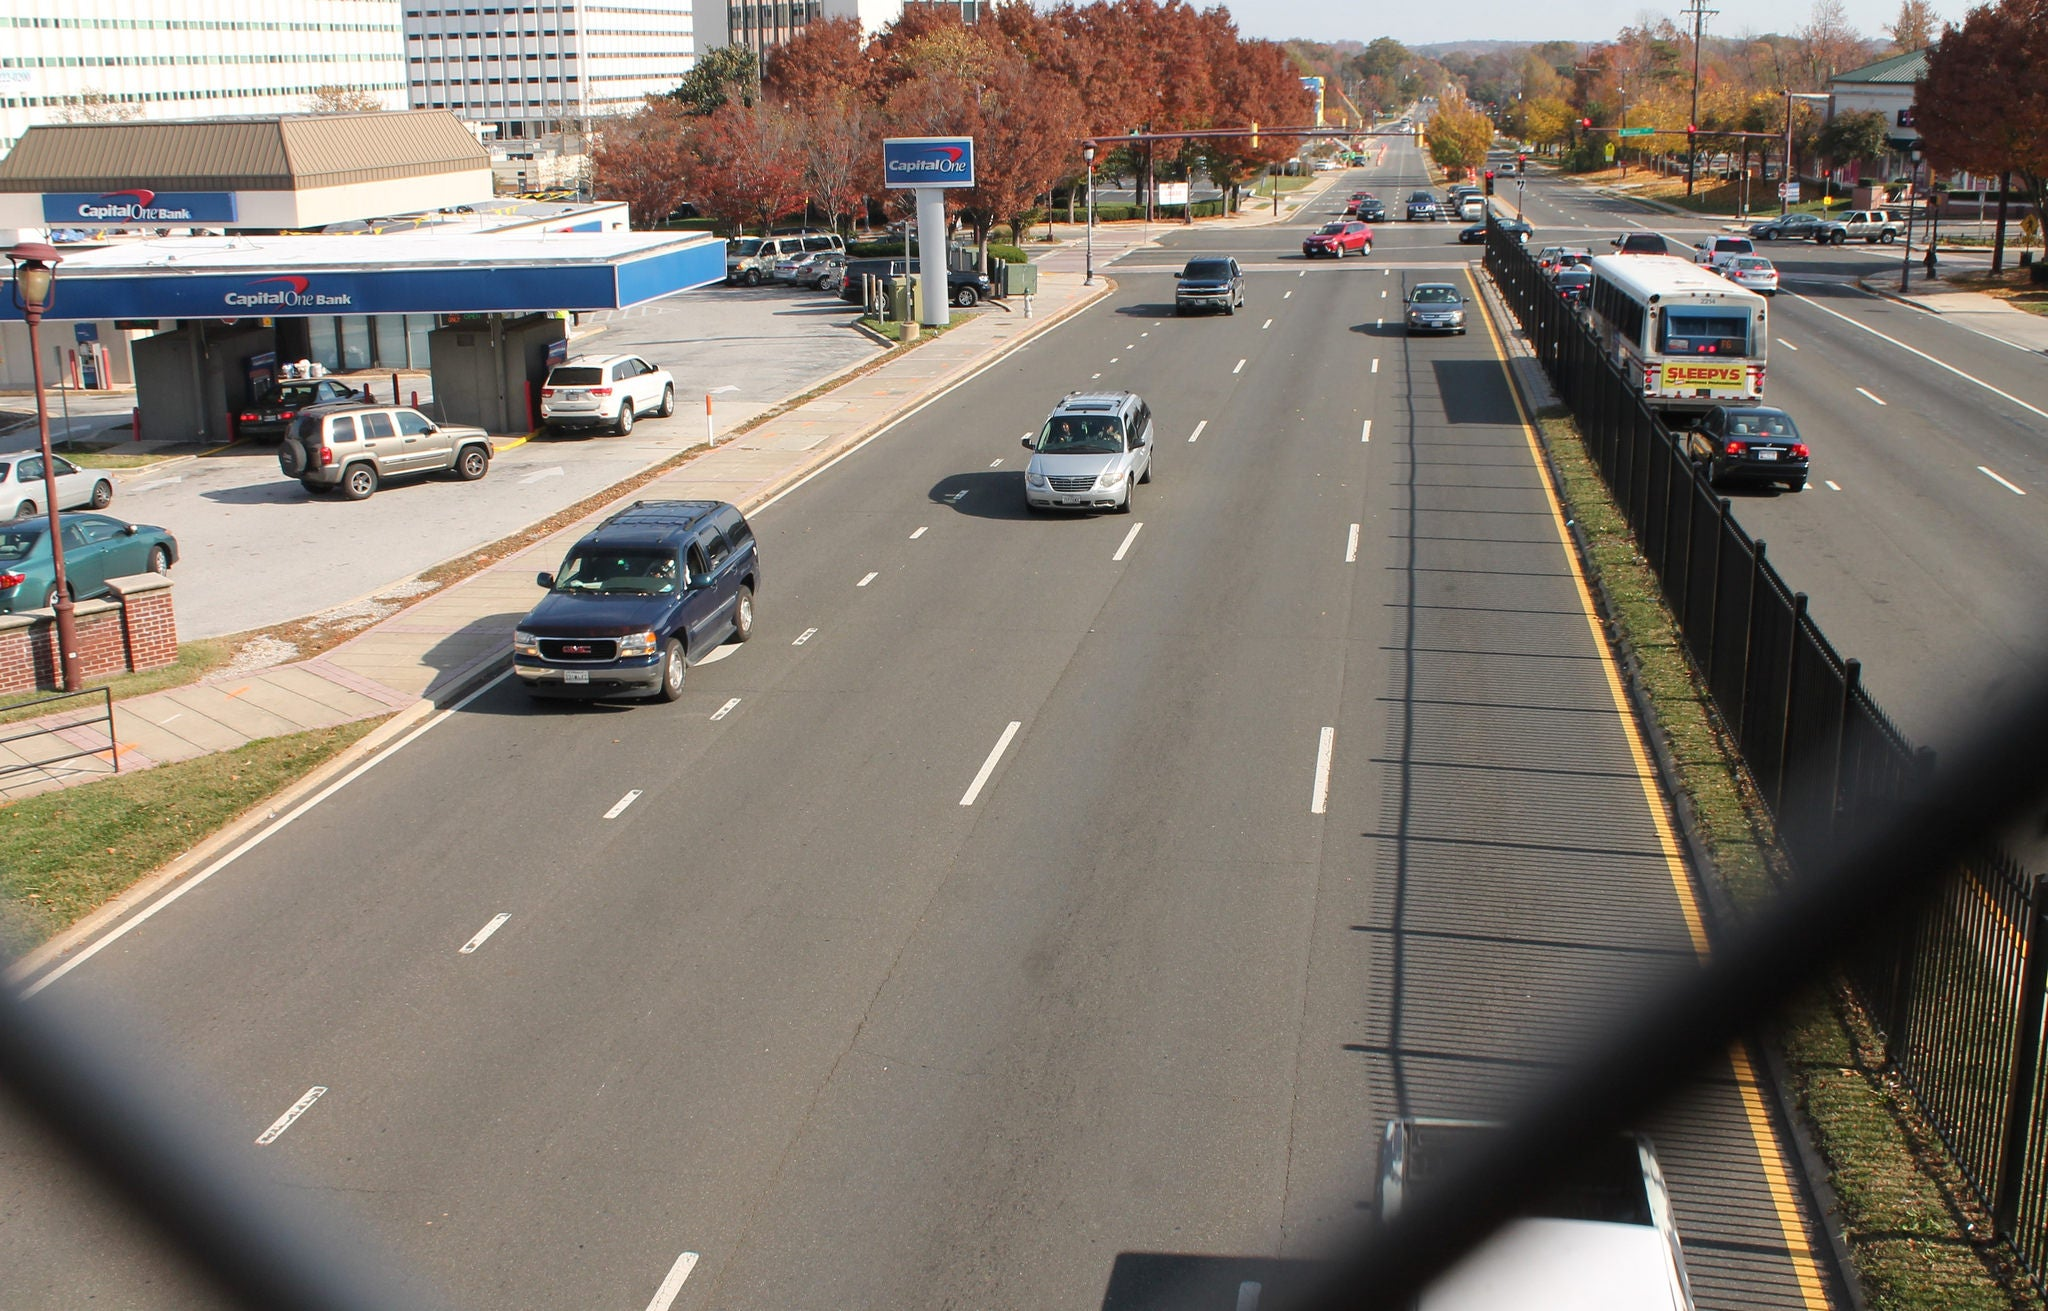 Cars travel on a four-lane road, as seen from an overpass.